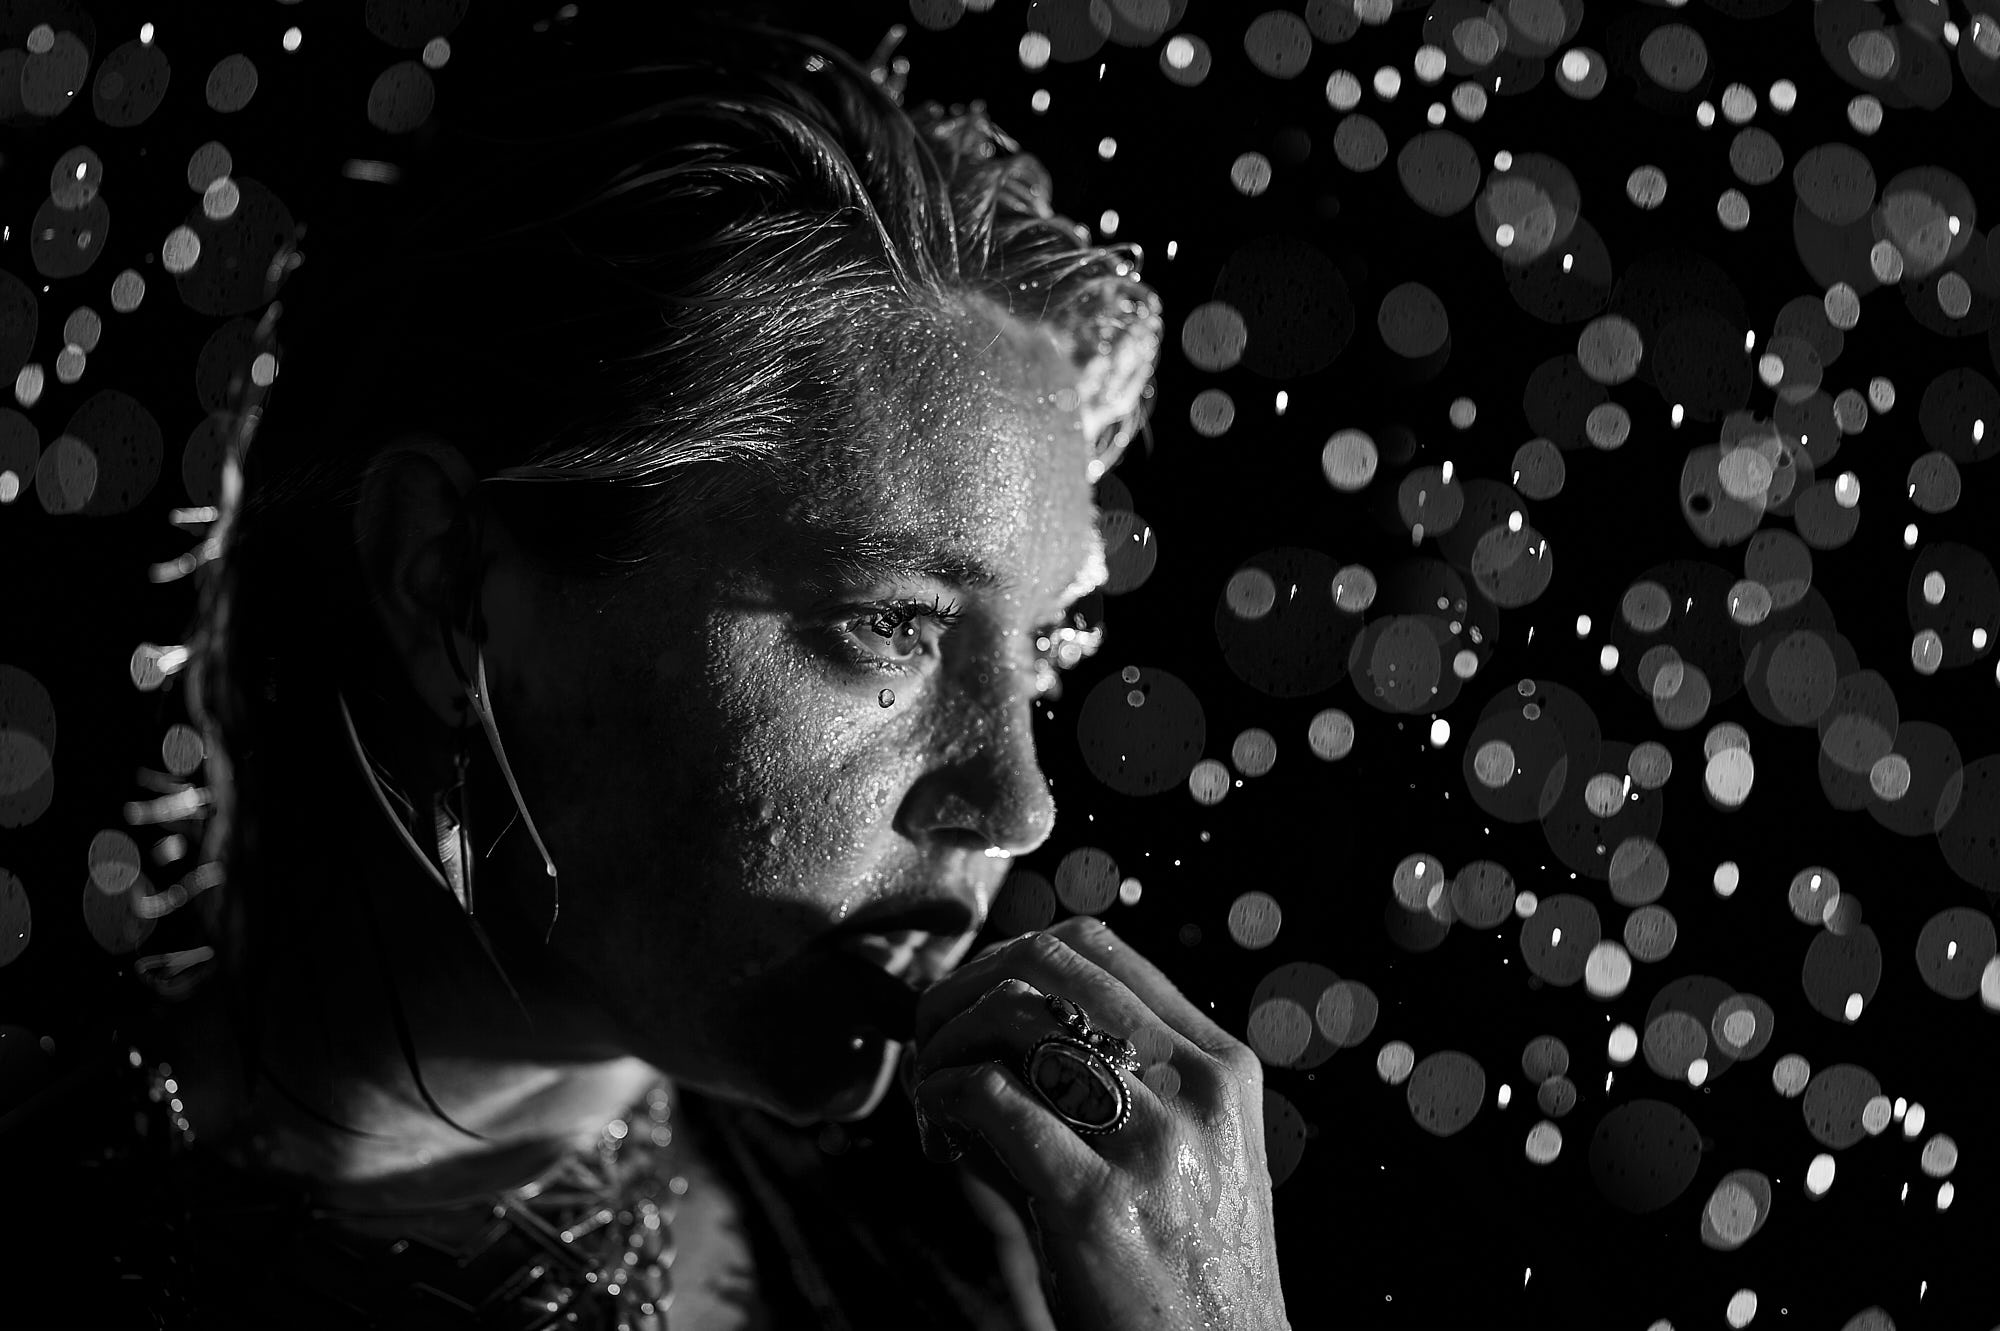 Meganoke Film Noir Rain Portrait Affinity Photo Edit